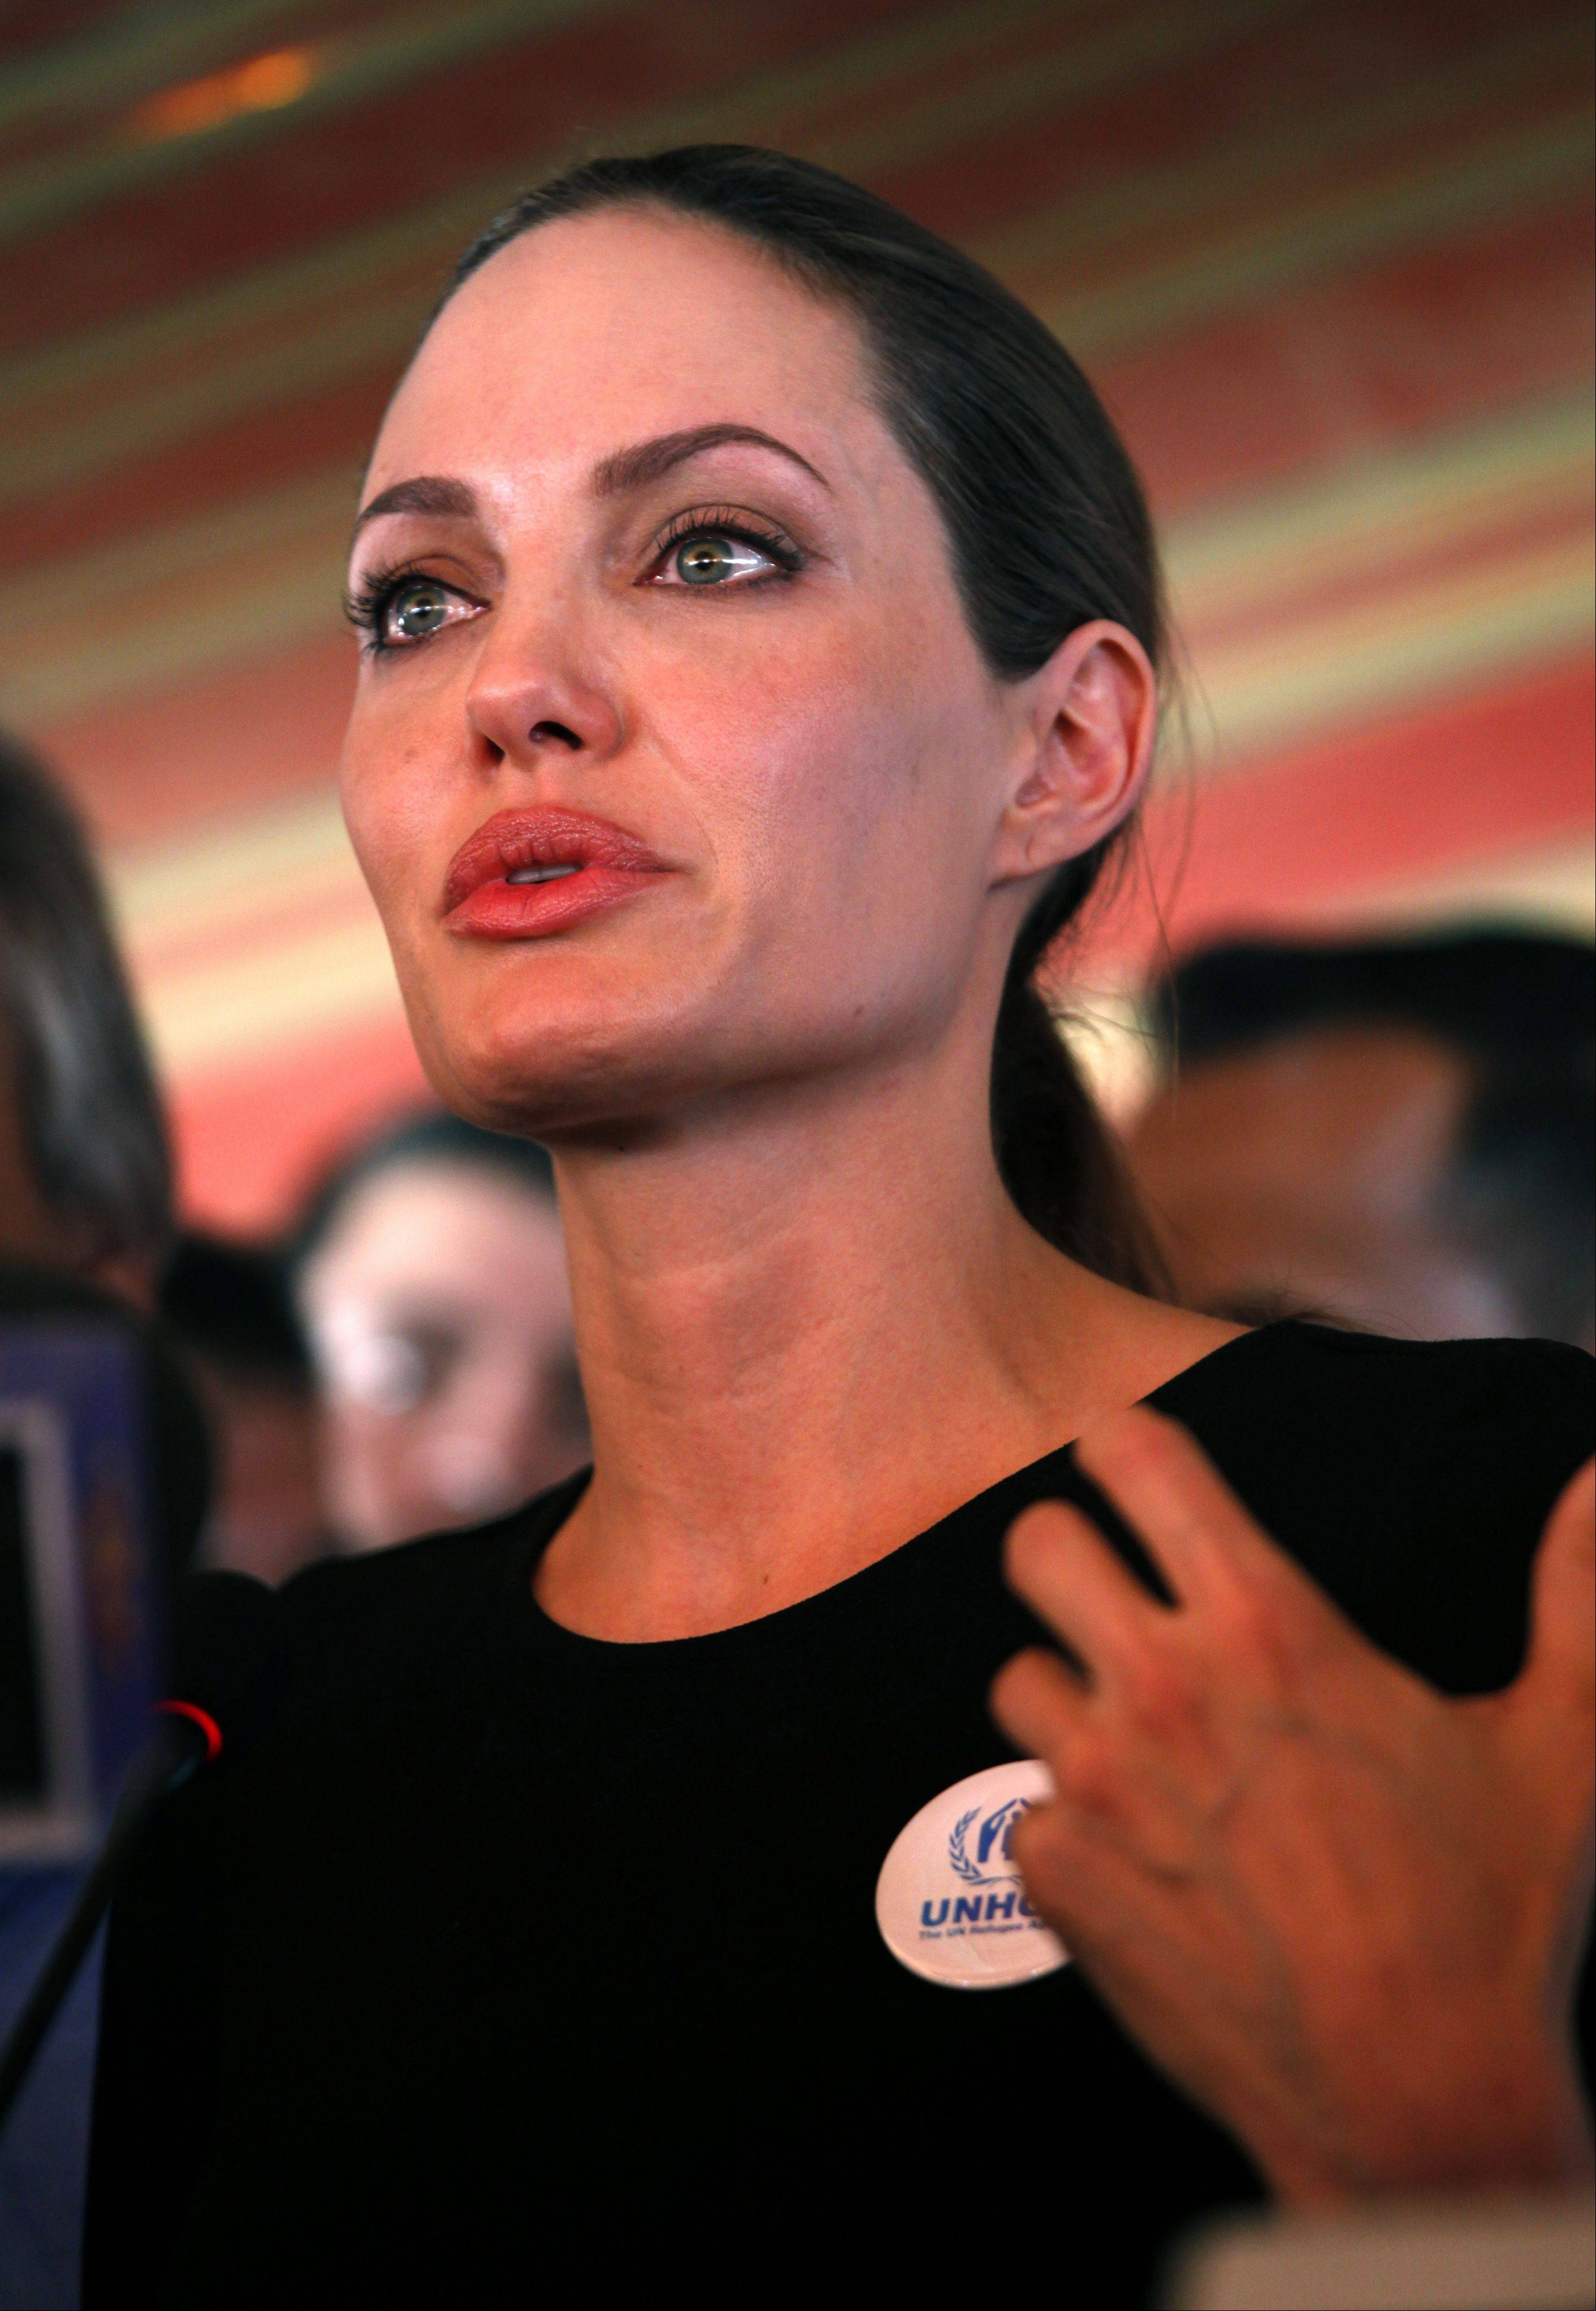 The U.N. refugee agency's special envoy, actress Angelina Jolie, speaks to the press during her visit to the Zaatari Syrian Refugees Camp, in Mafraq, Jordan, Tuesday, Sept. 11, 2012. The Hollywood star arrived on Tuesday morning in the Zaatari camp, which hosts about 27,000 Syrians displaced by the 18-month conflict.